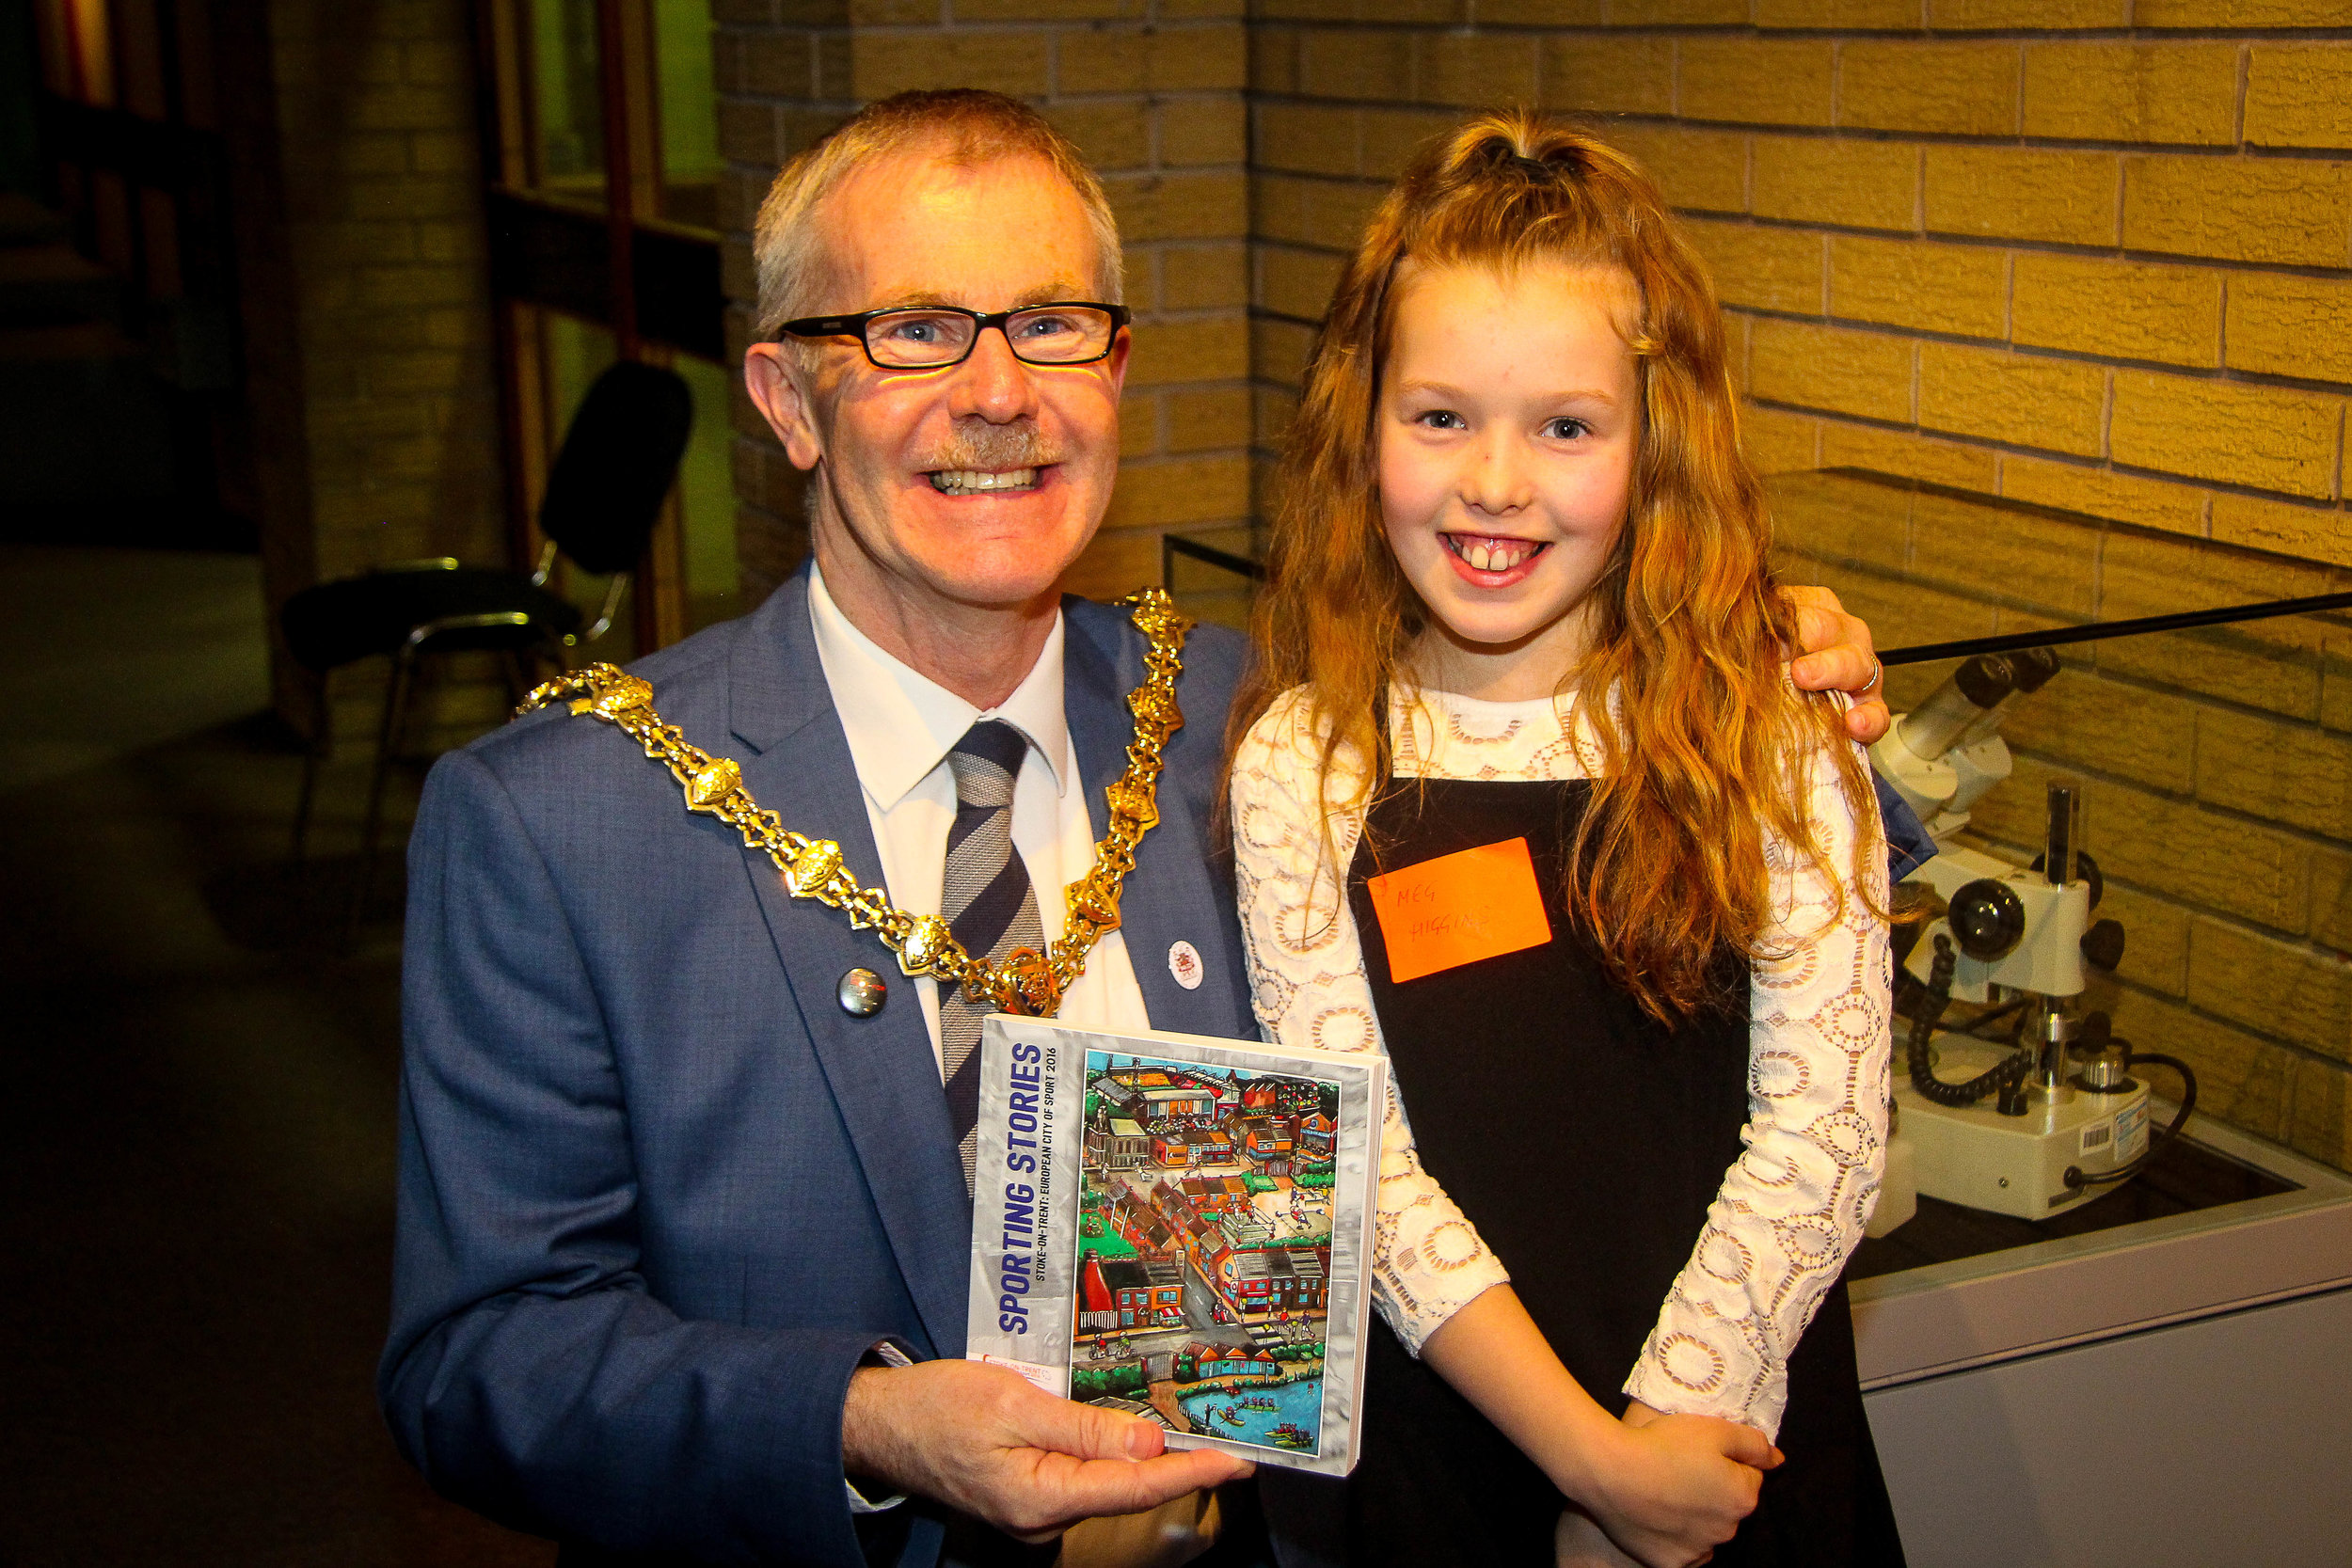 And Meg again, on the autograph trail with the Lord Mayor!